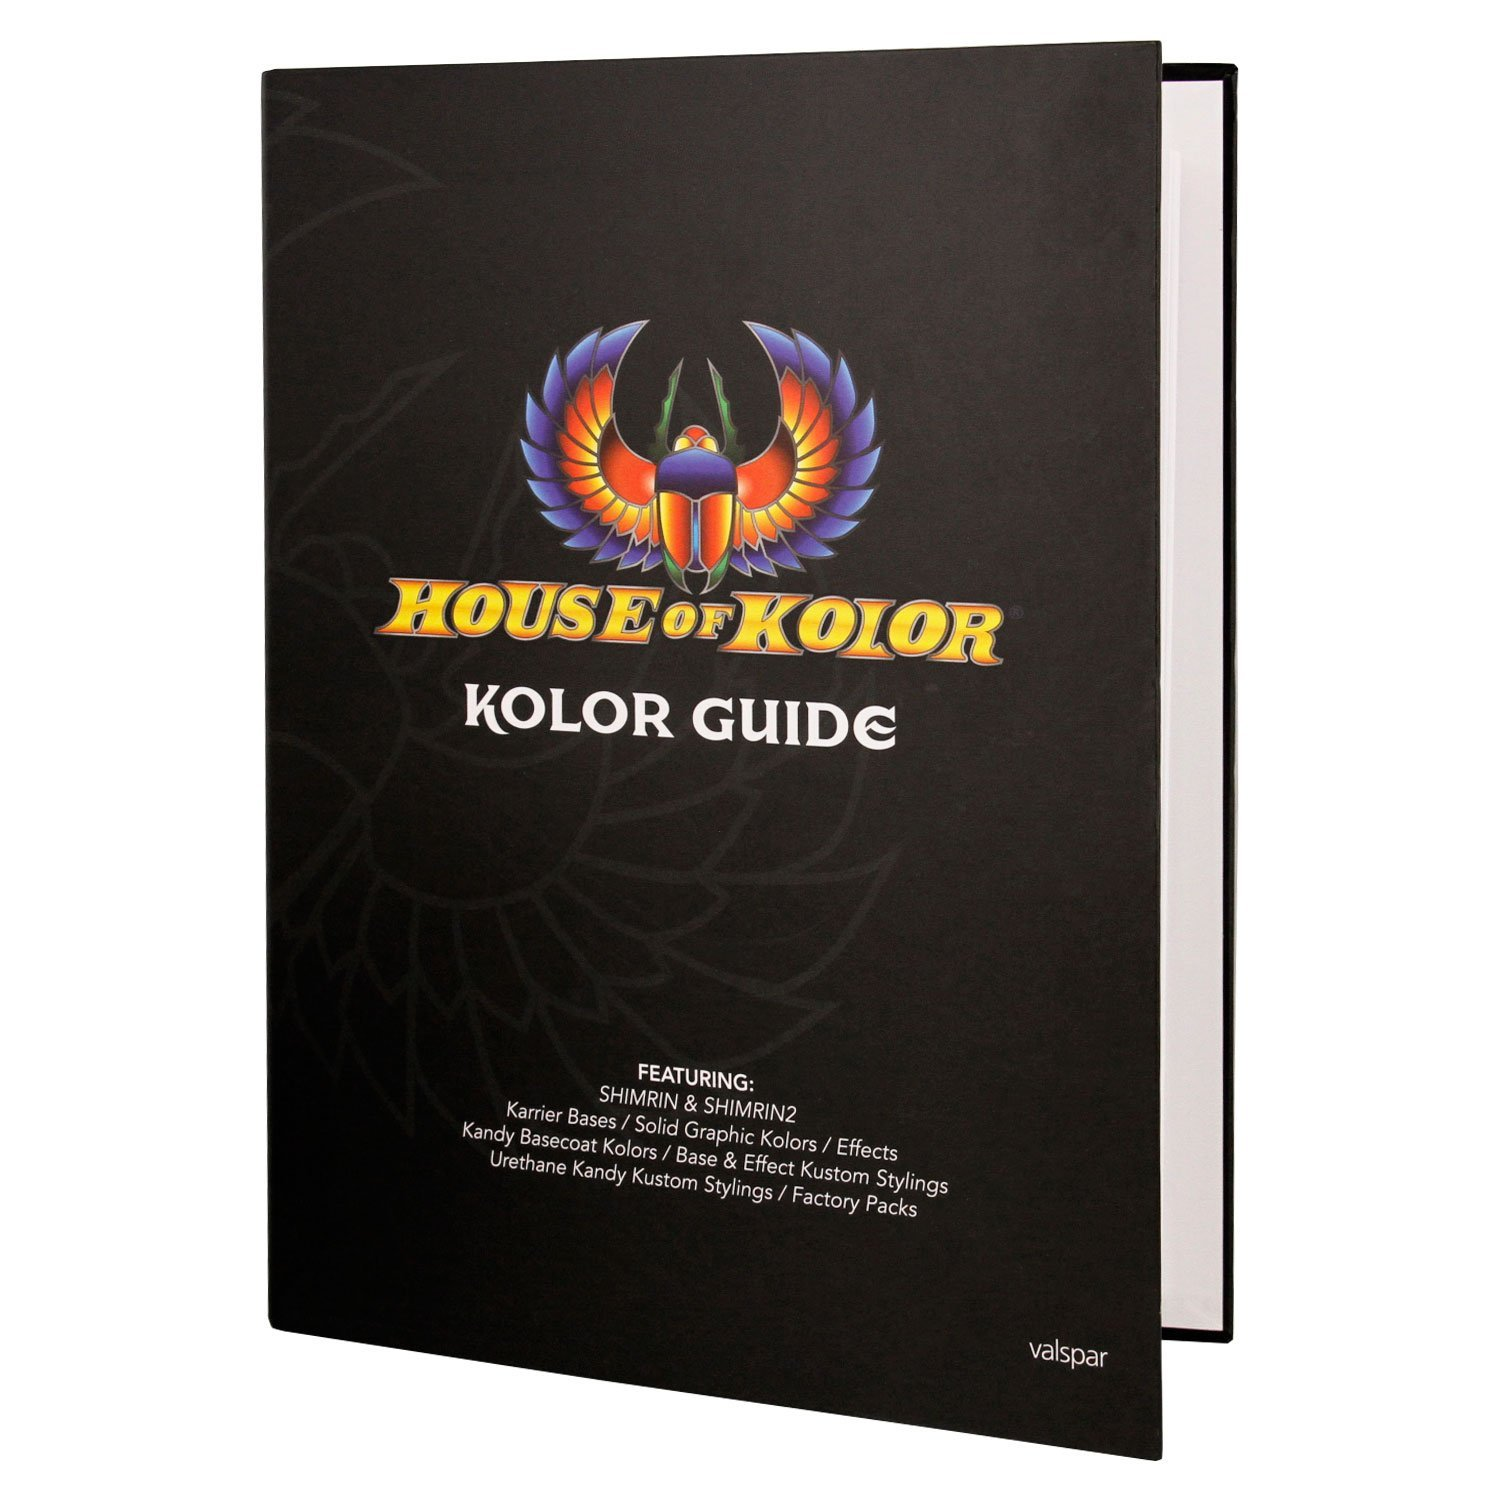 House of Kolor Color Chip Sample Hardcover Guide featuring Shimrin and Shimrin2